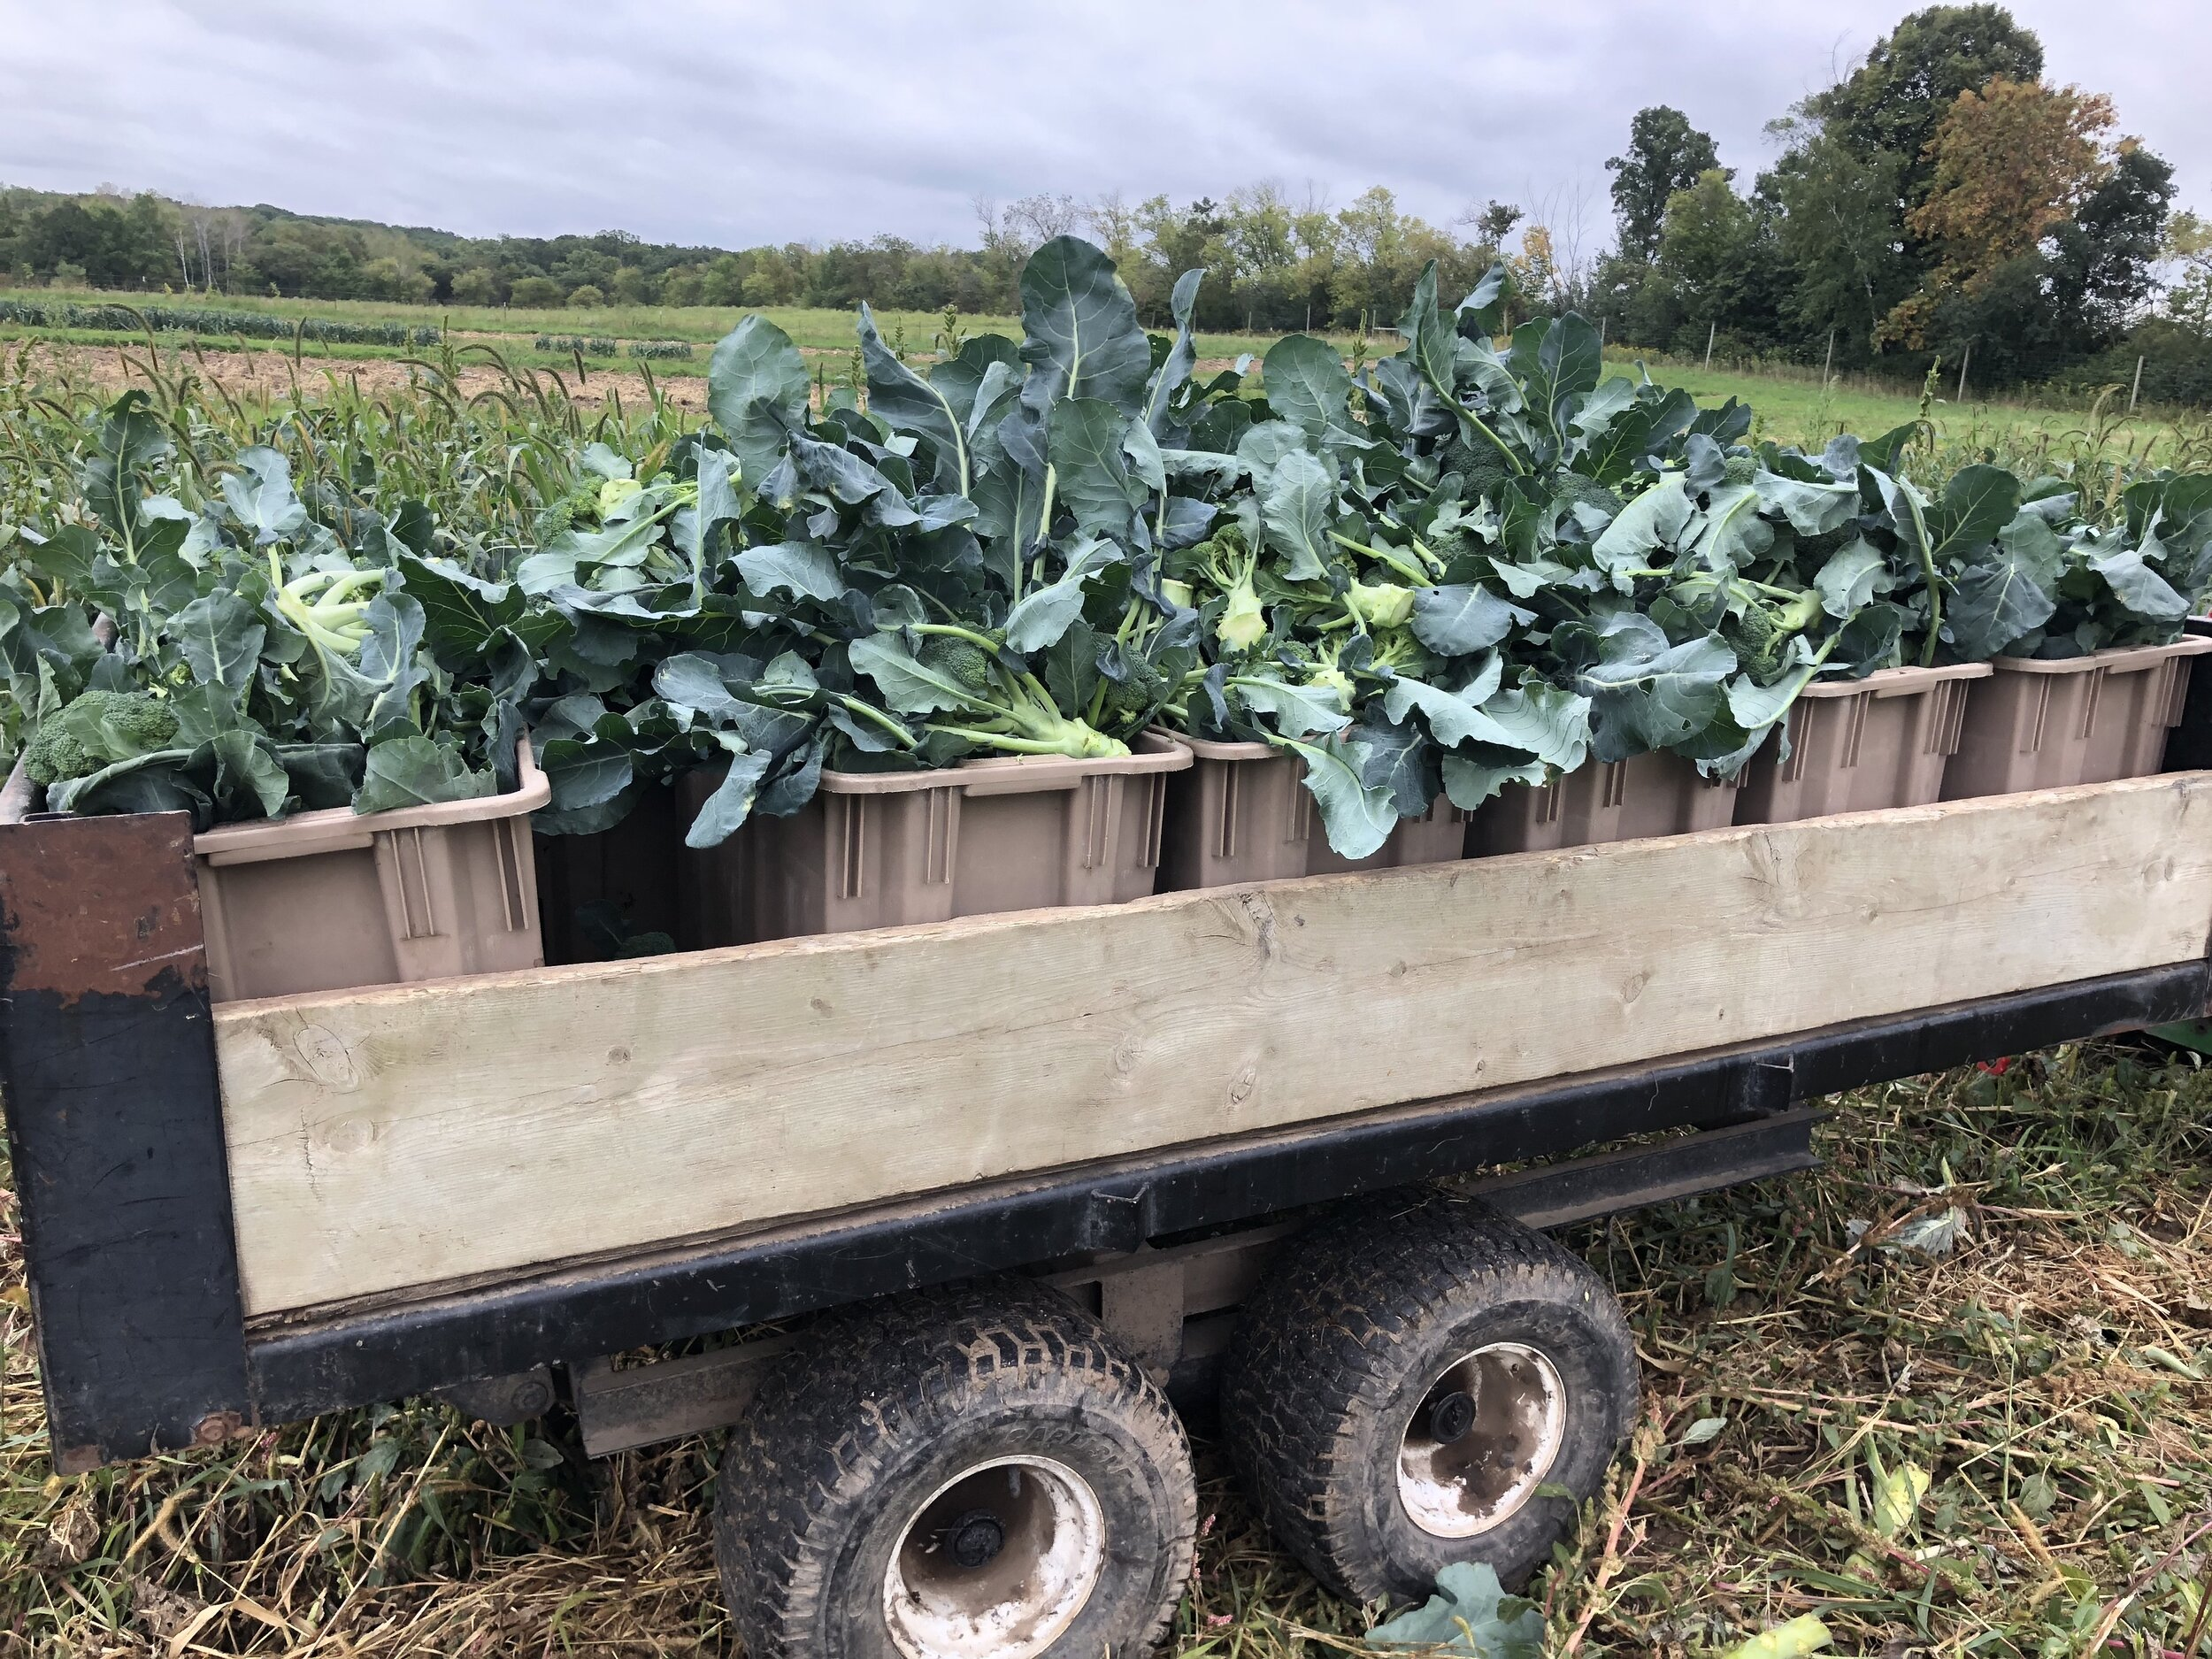 broccoli coming your way!